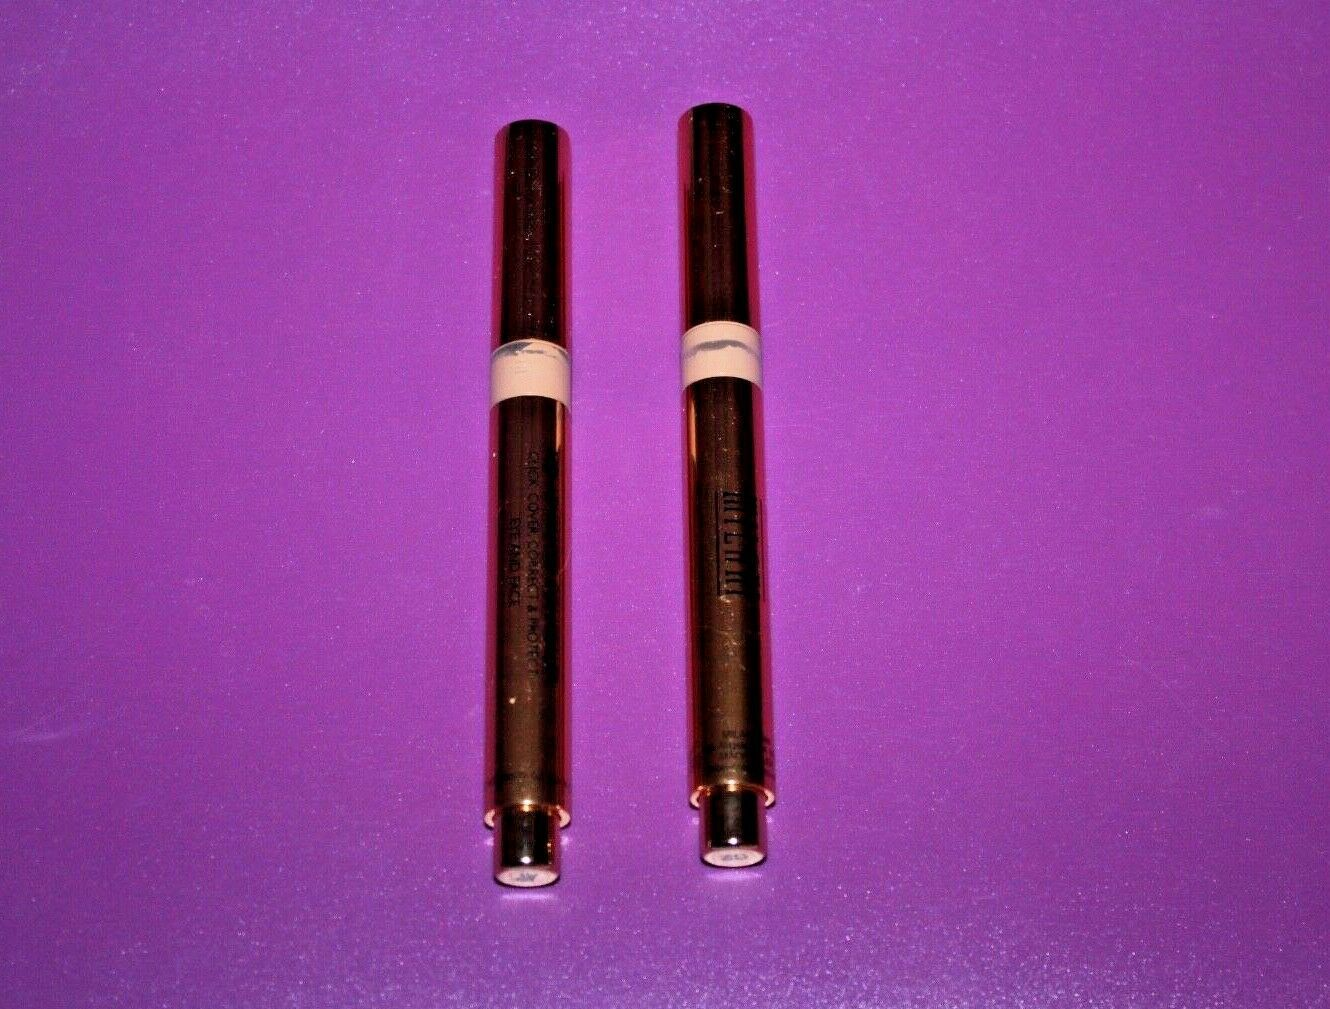 MILANI HD ADVANCED CONCEALER #02 MEDIUM LOT OF 2 NEW  UNSEALED - $11.11